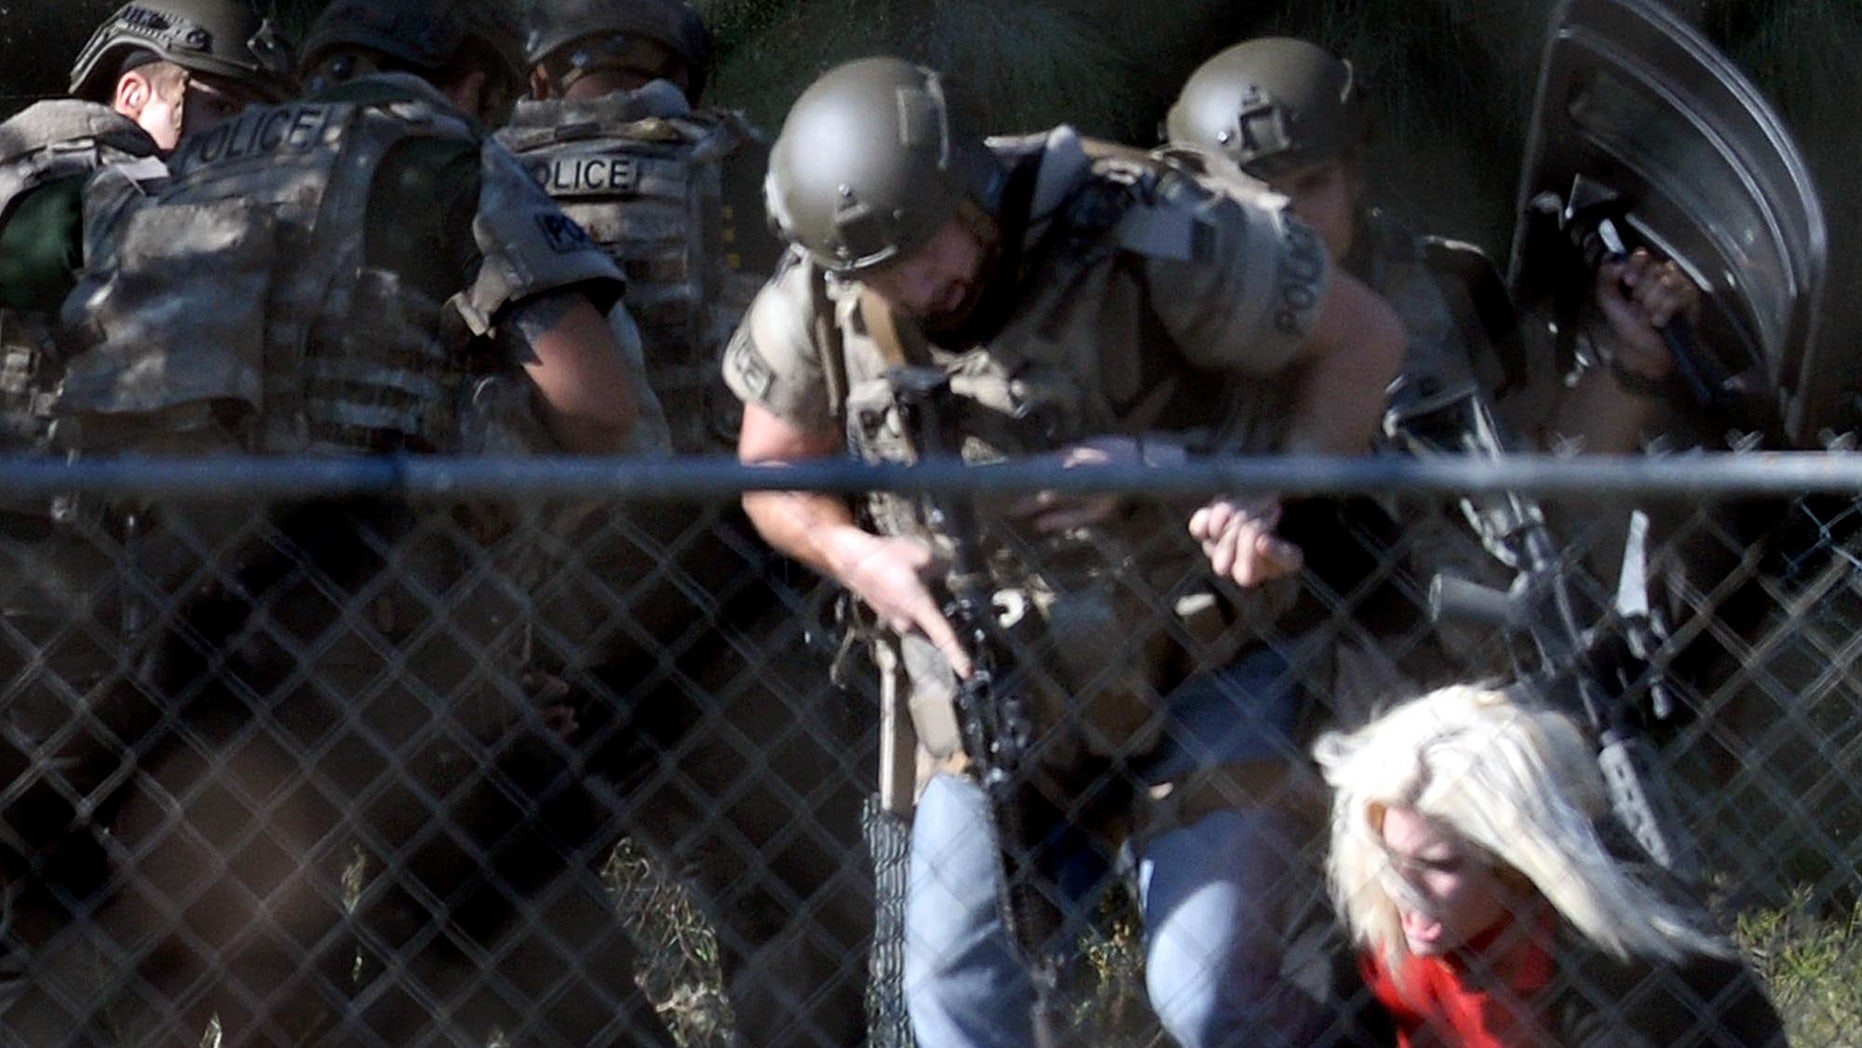 Police officers escort Kristin Bauer after the hostage-taking.